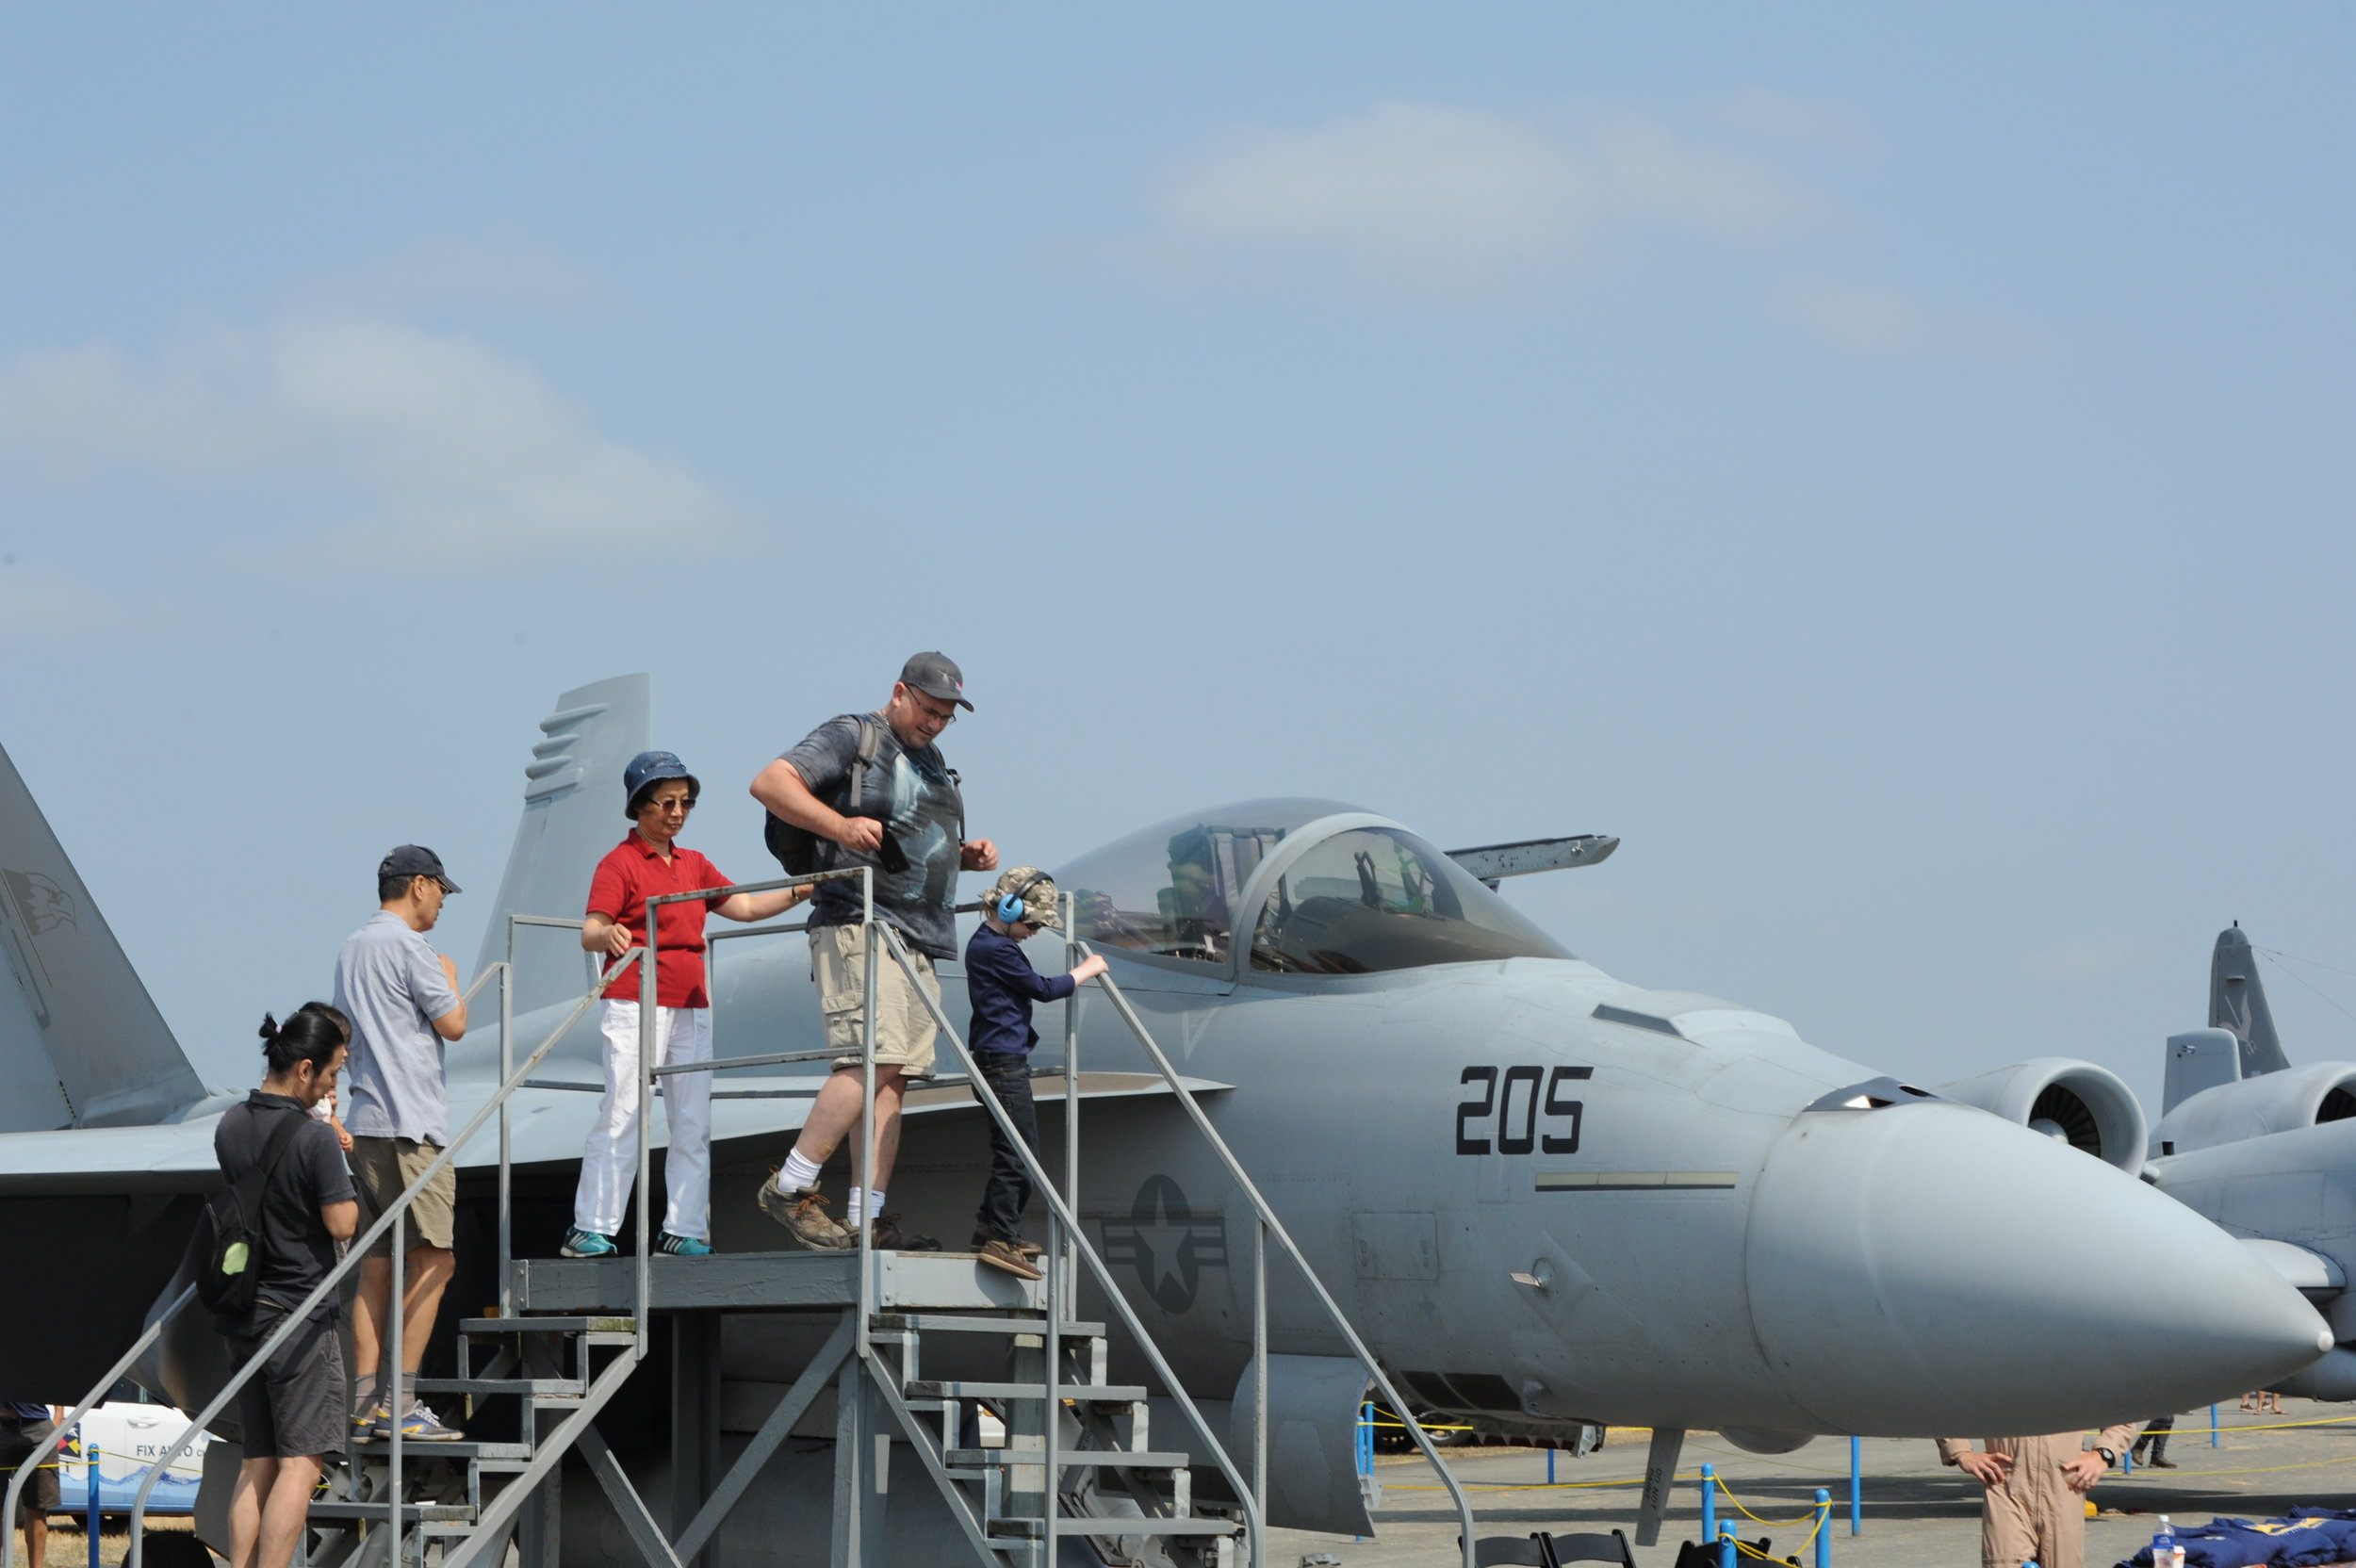 Visitors at the Abbotsford Air Show lined up to get a close-up view of the inside of a USAF Boeing Super Hornet cockpit. (photos courtesy of mark pugliese     &     david pugliese)